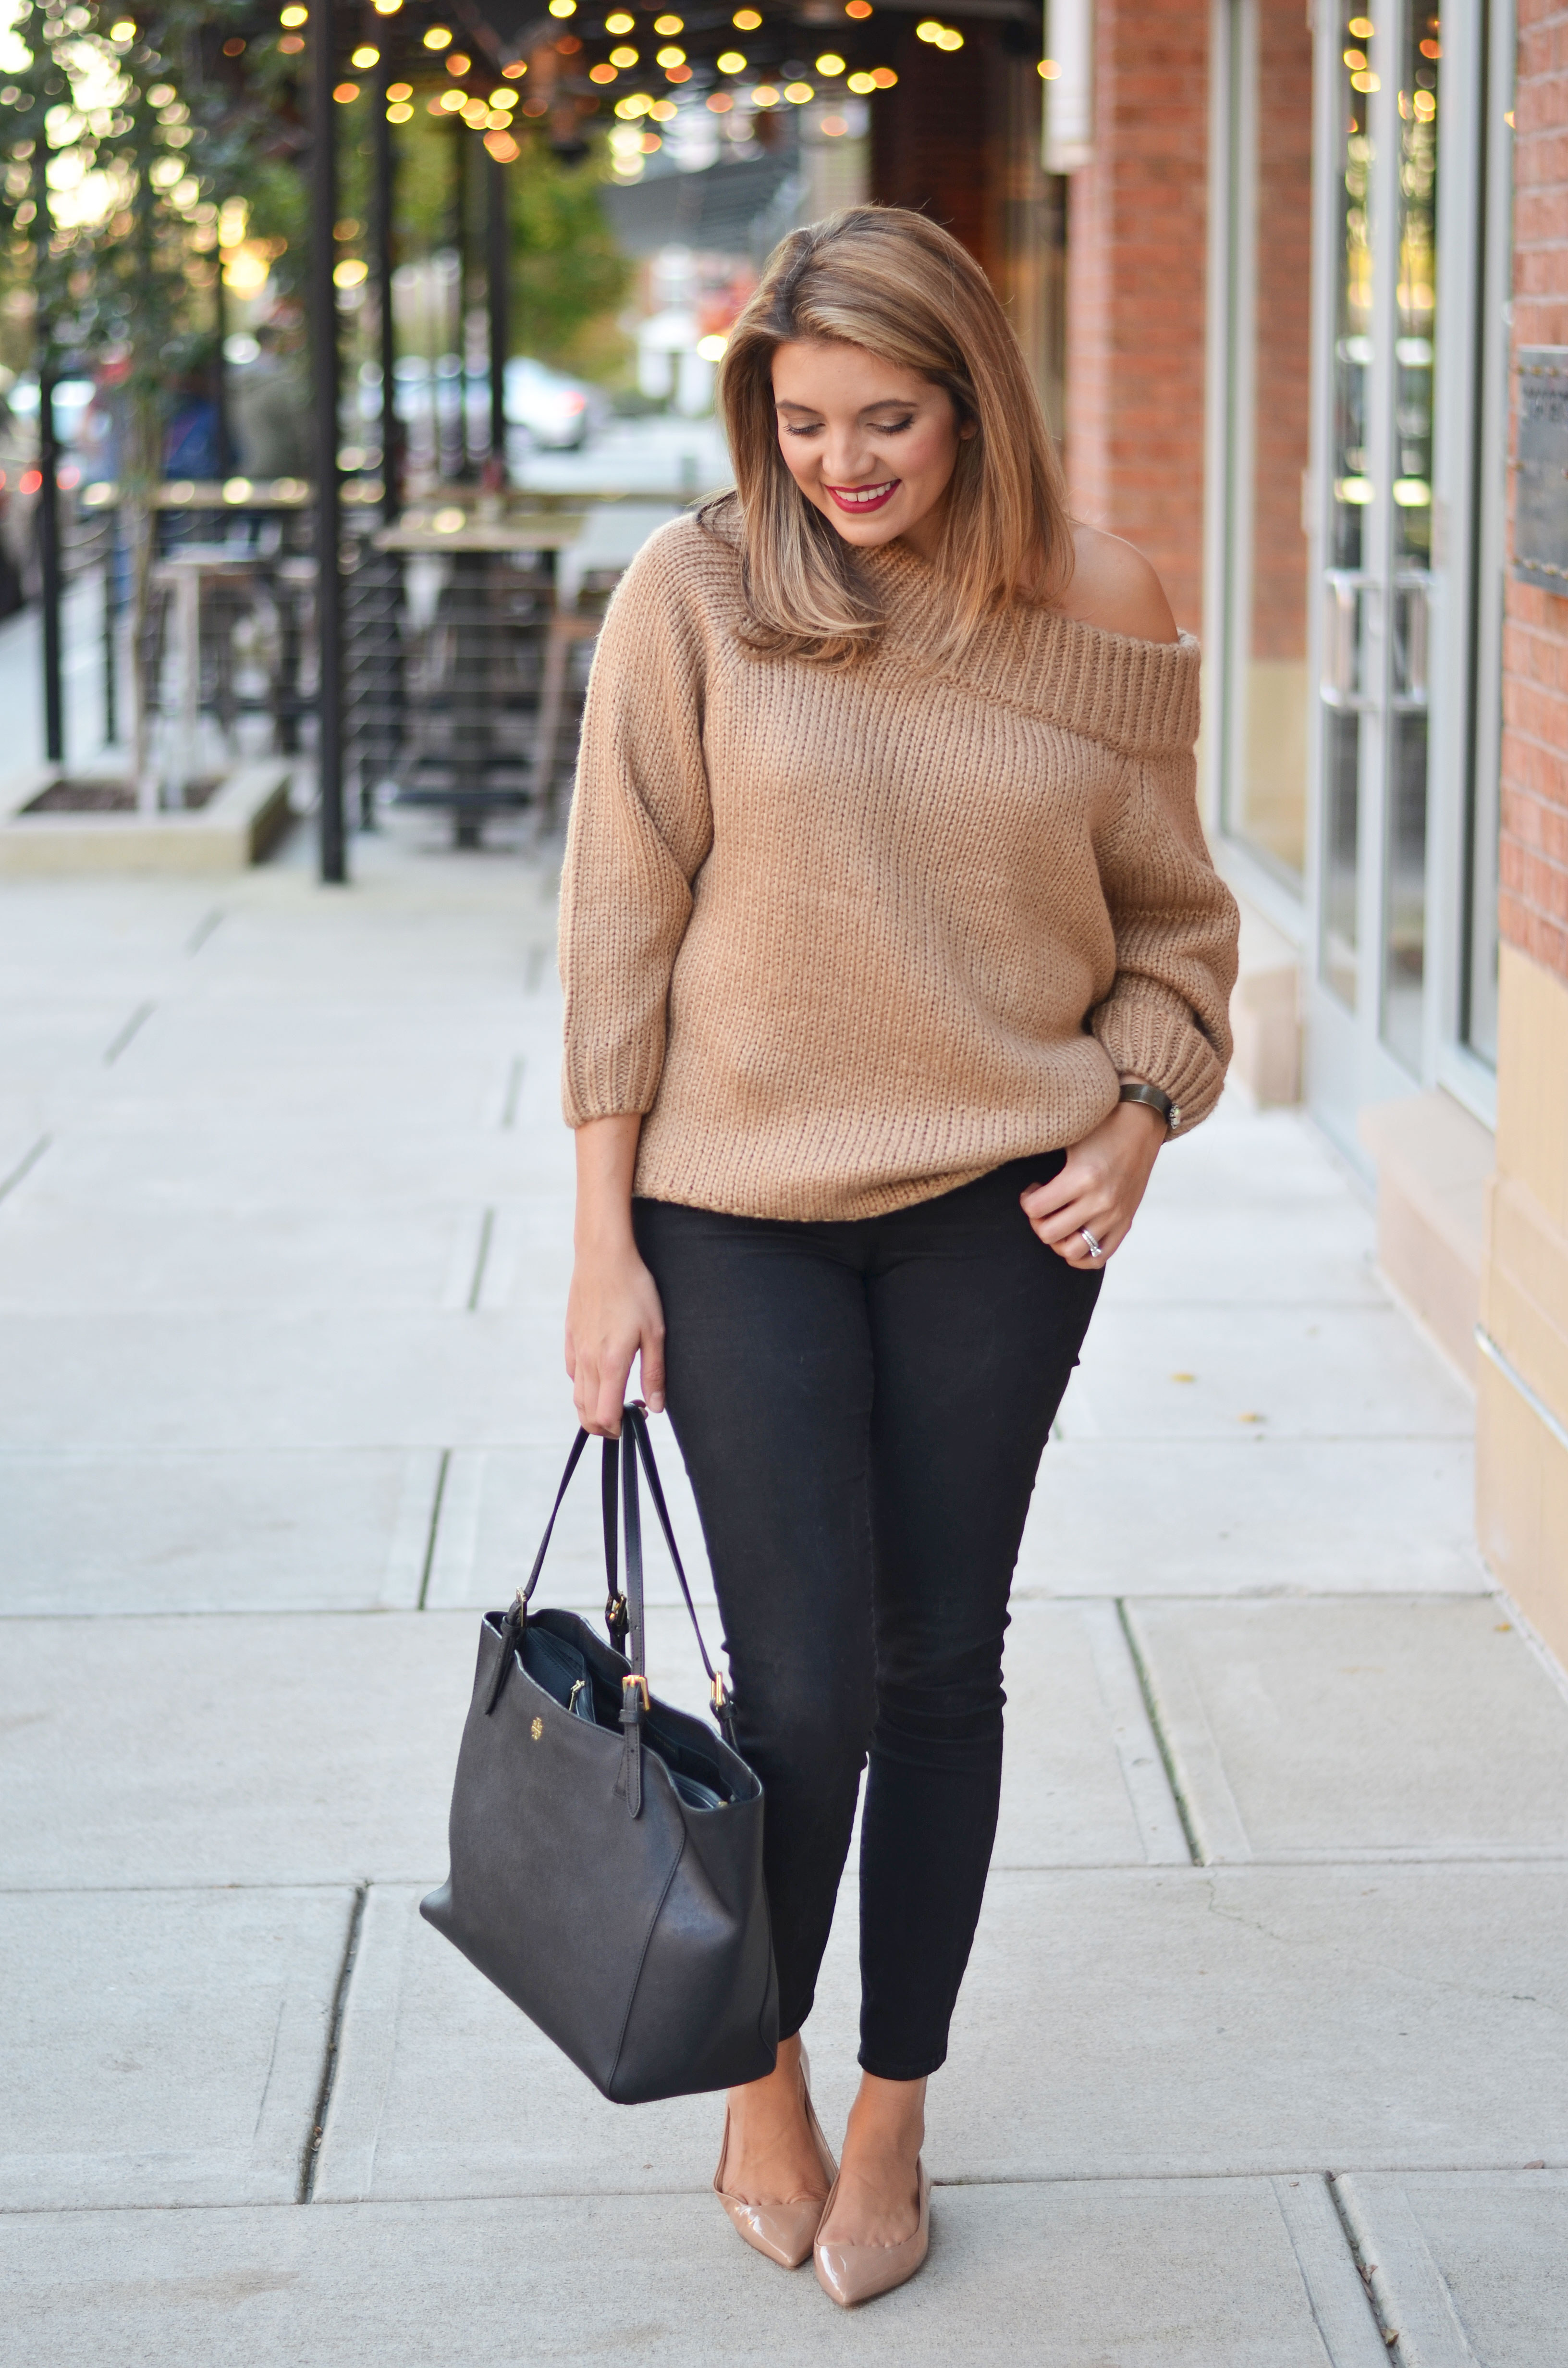 chunky camel sweater outfit - tan off shoulder sweater with black skinny jeans and nude patent flats | www.bylaurenm.com